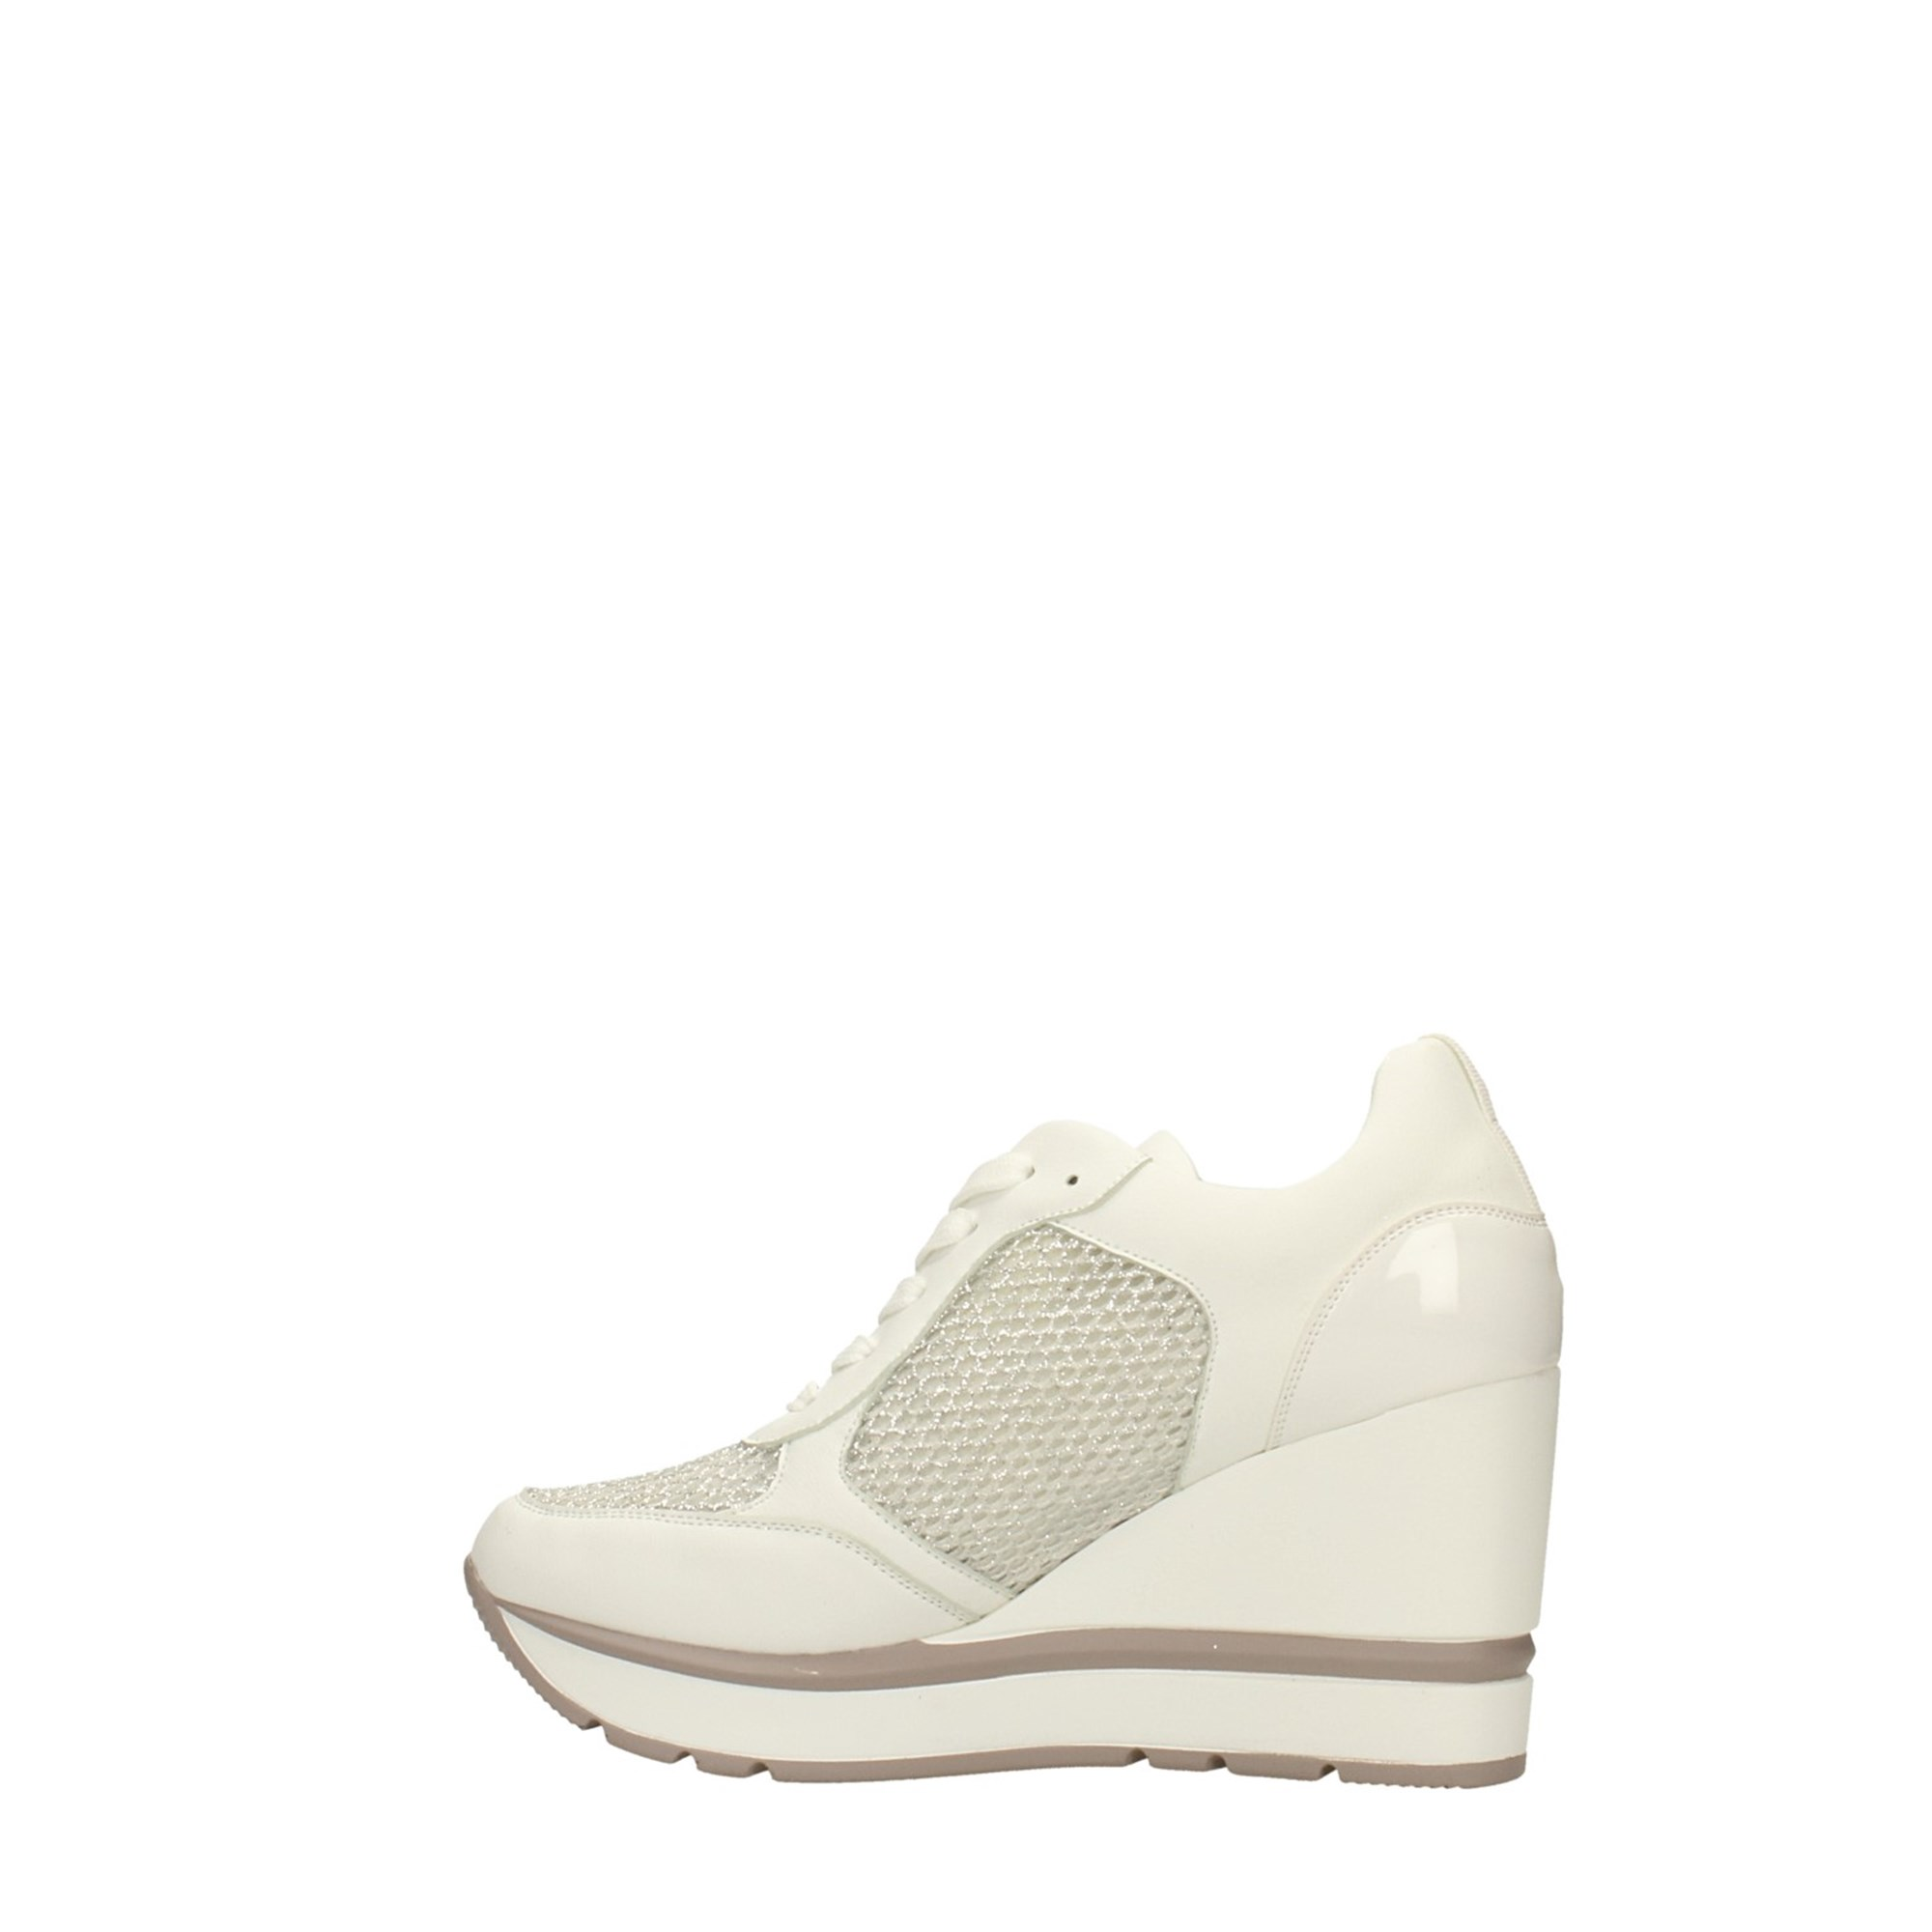 Tata Italia Shoes Woman Sneakers 116-21T31